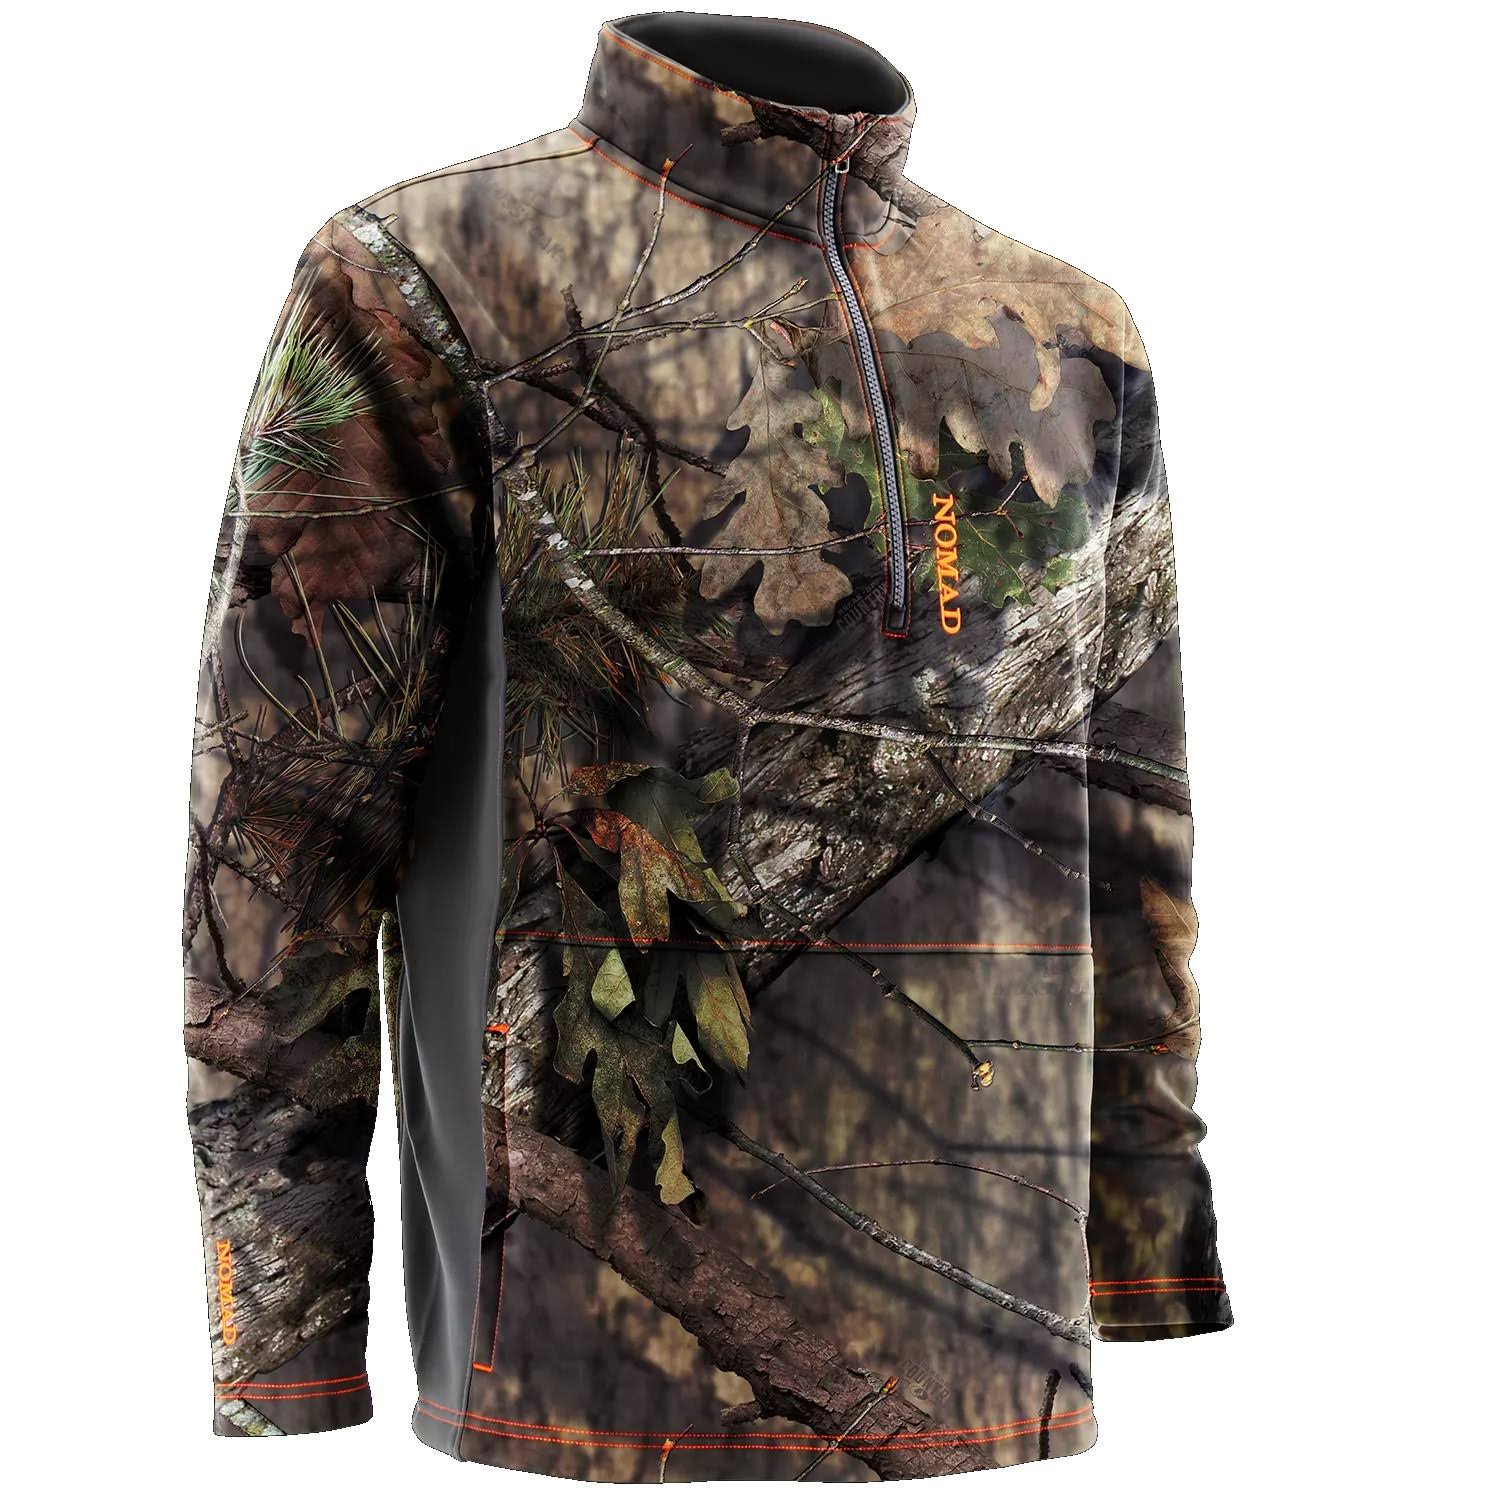 4 Eiche Camo Fleece Country Zip Southbounder Nomad S Moosige 1 px5fntqX0